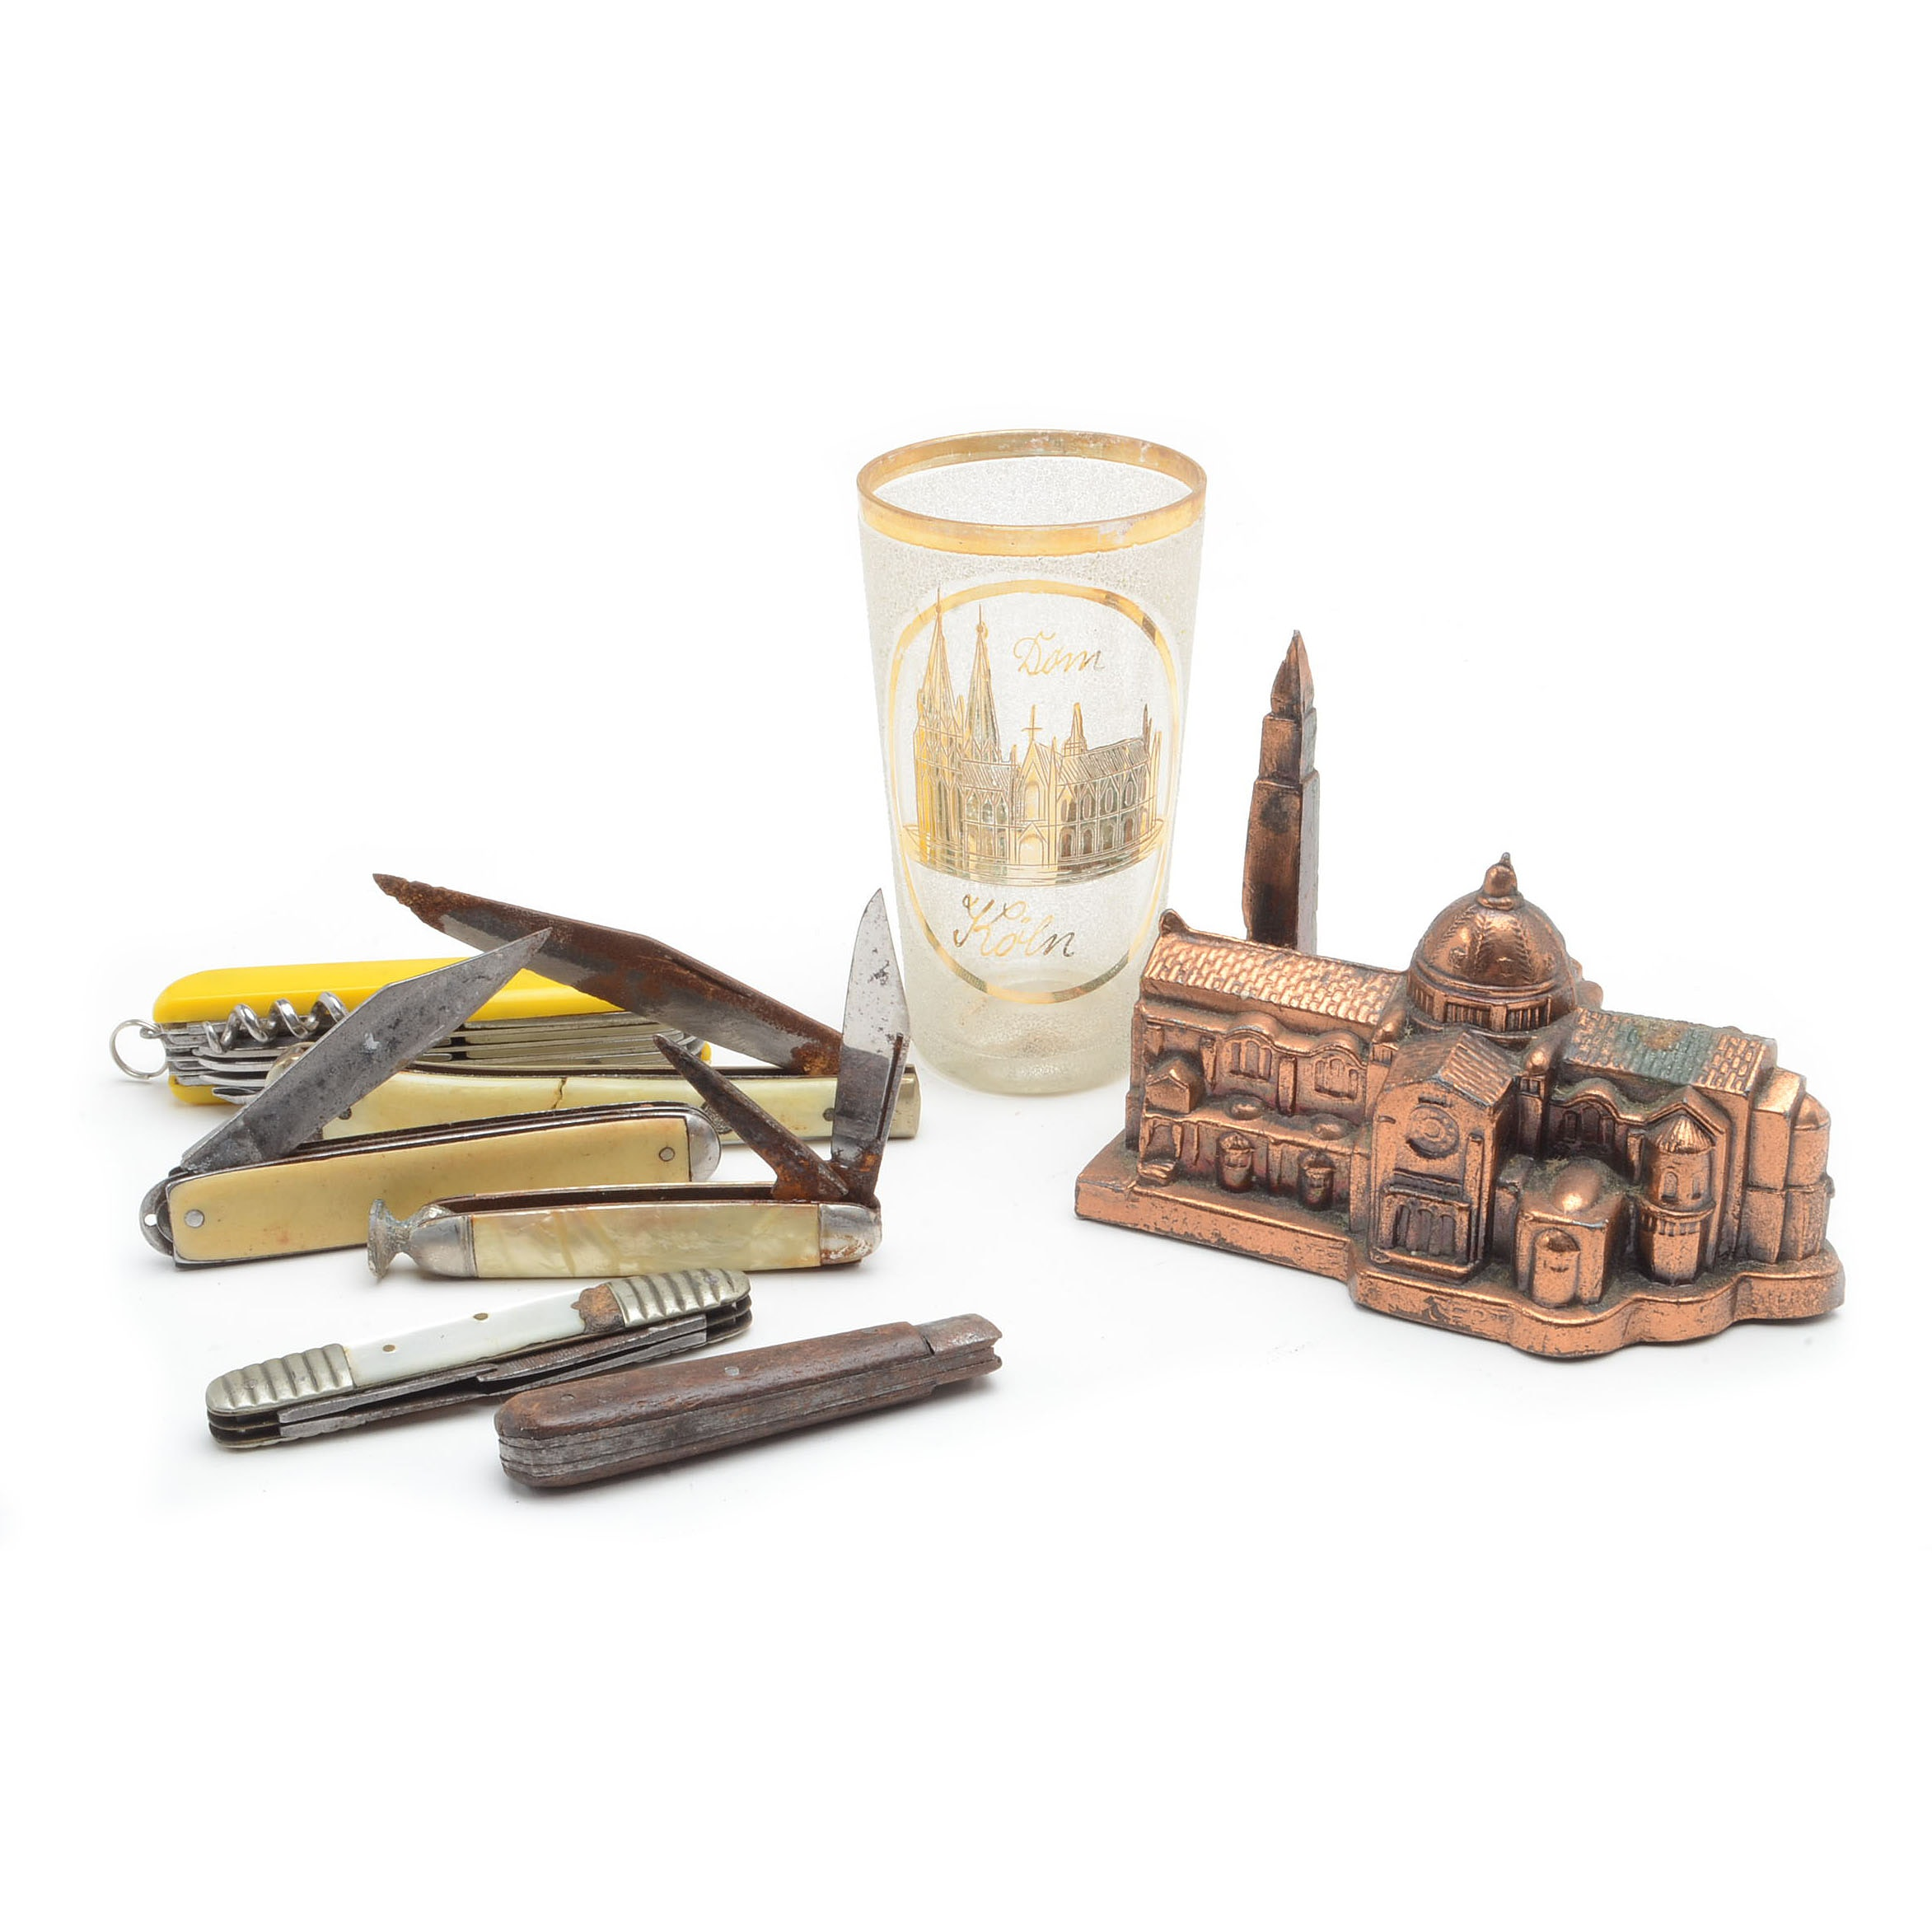 Pocket Knives and Souvenir Paperweight and Glass